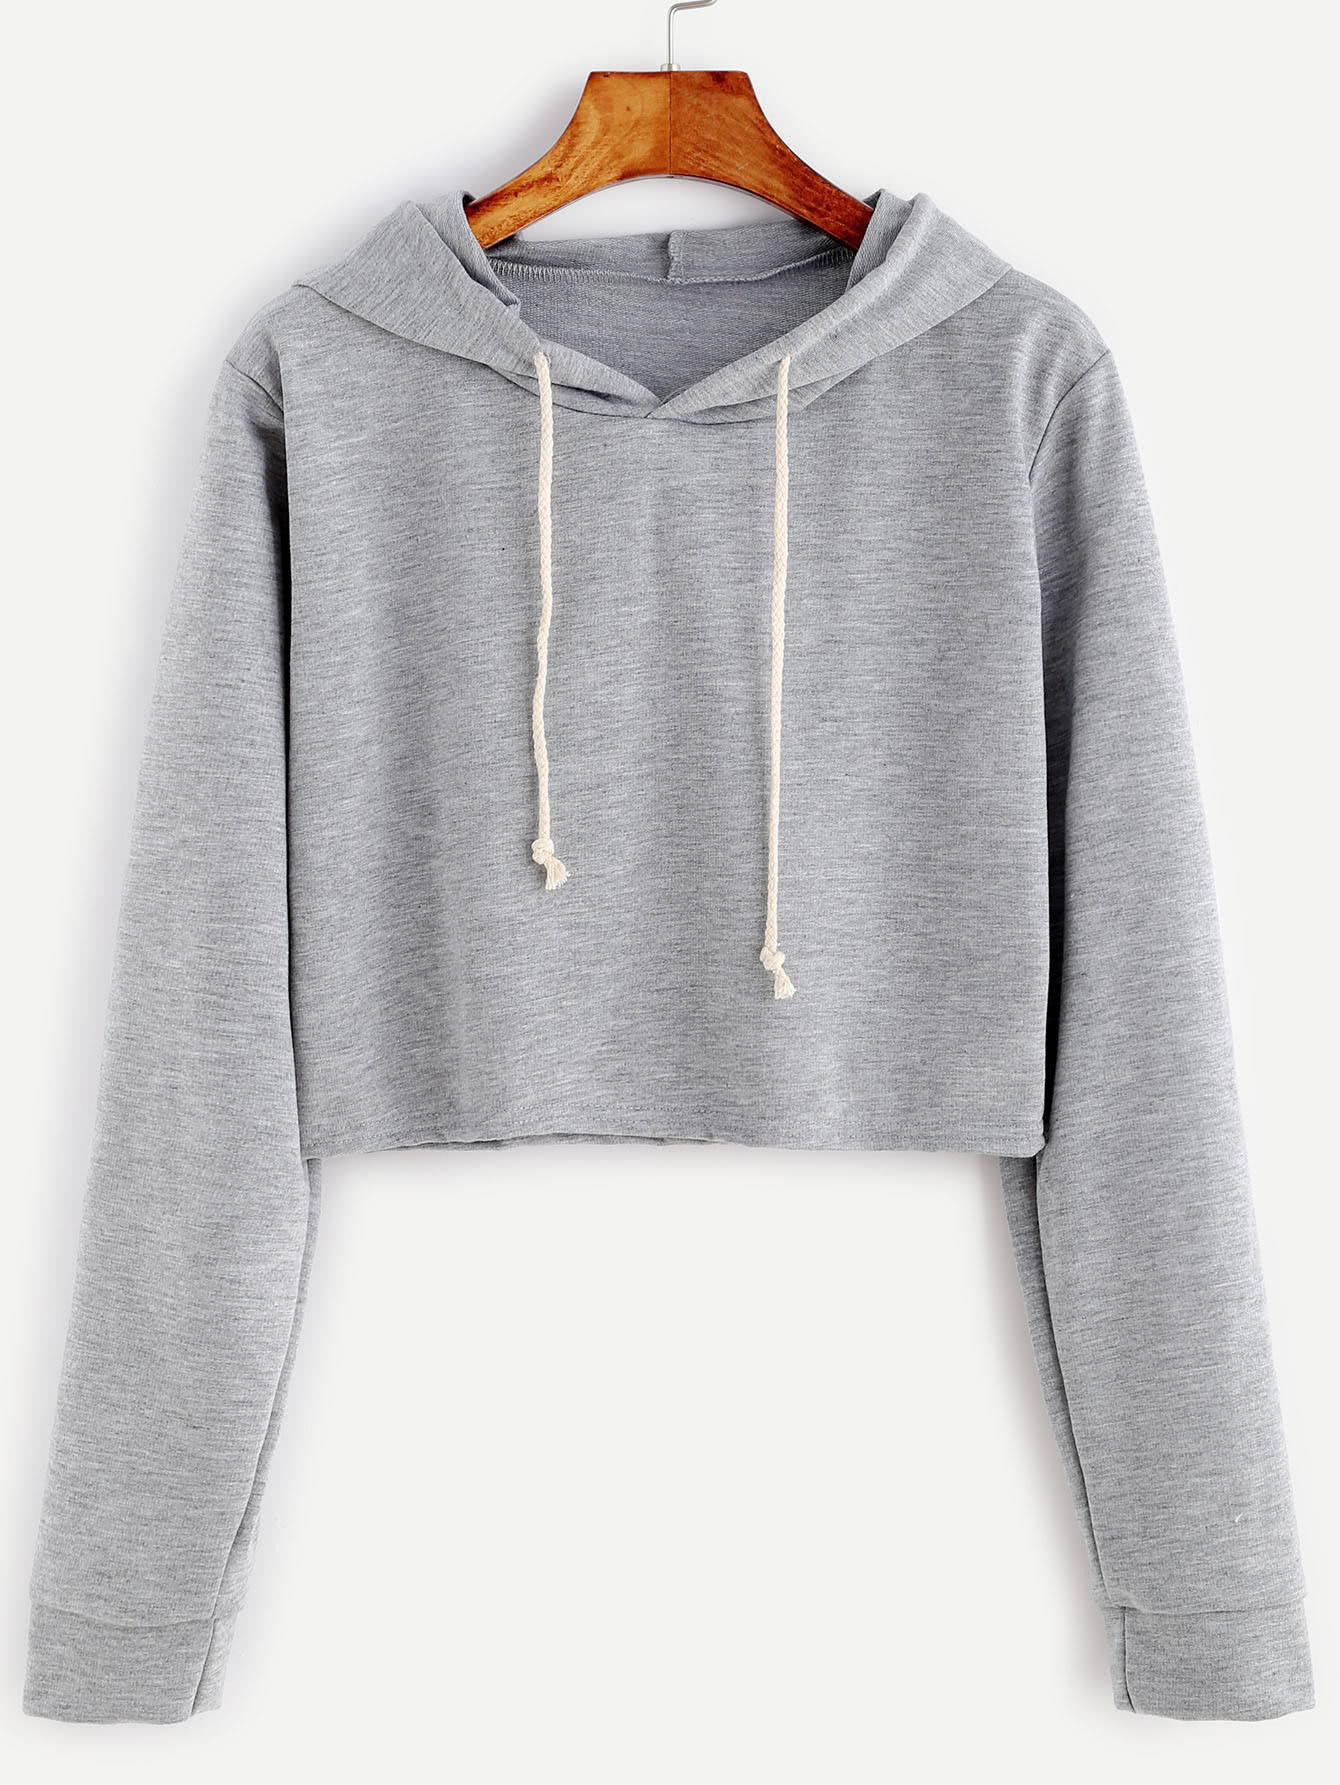 Adidas Shoes Hoodie Gray